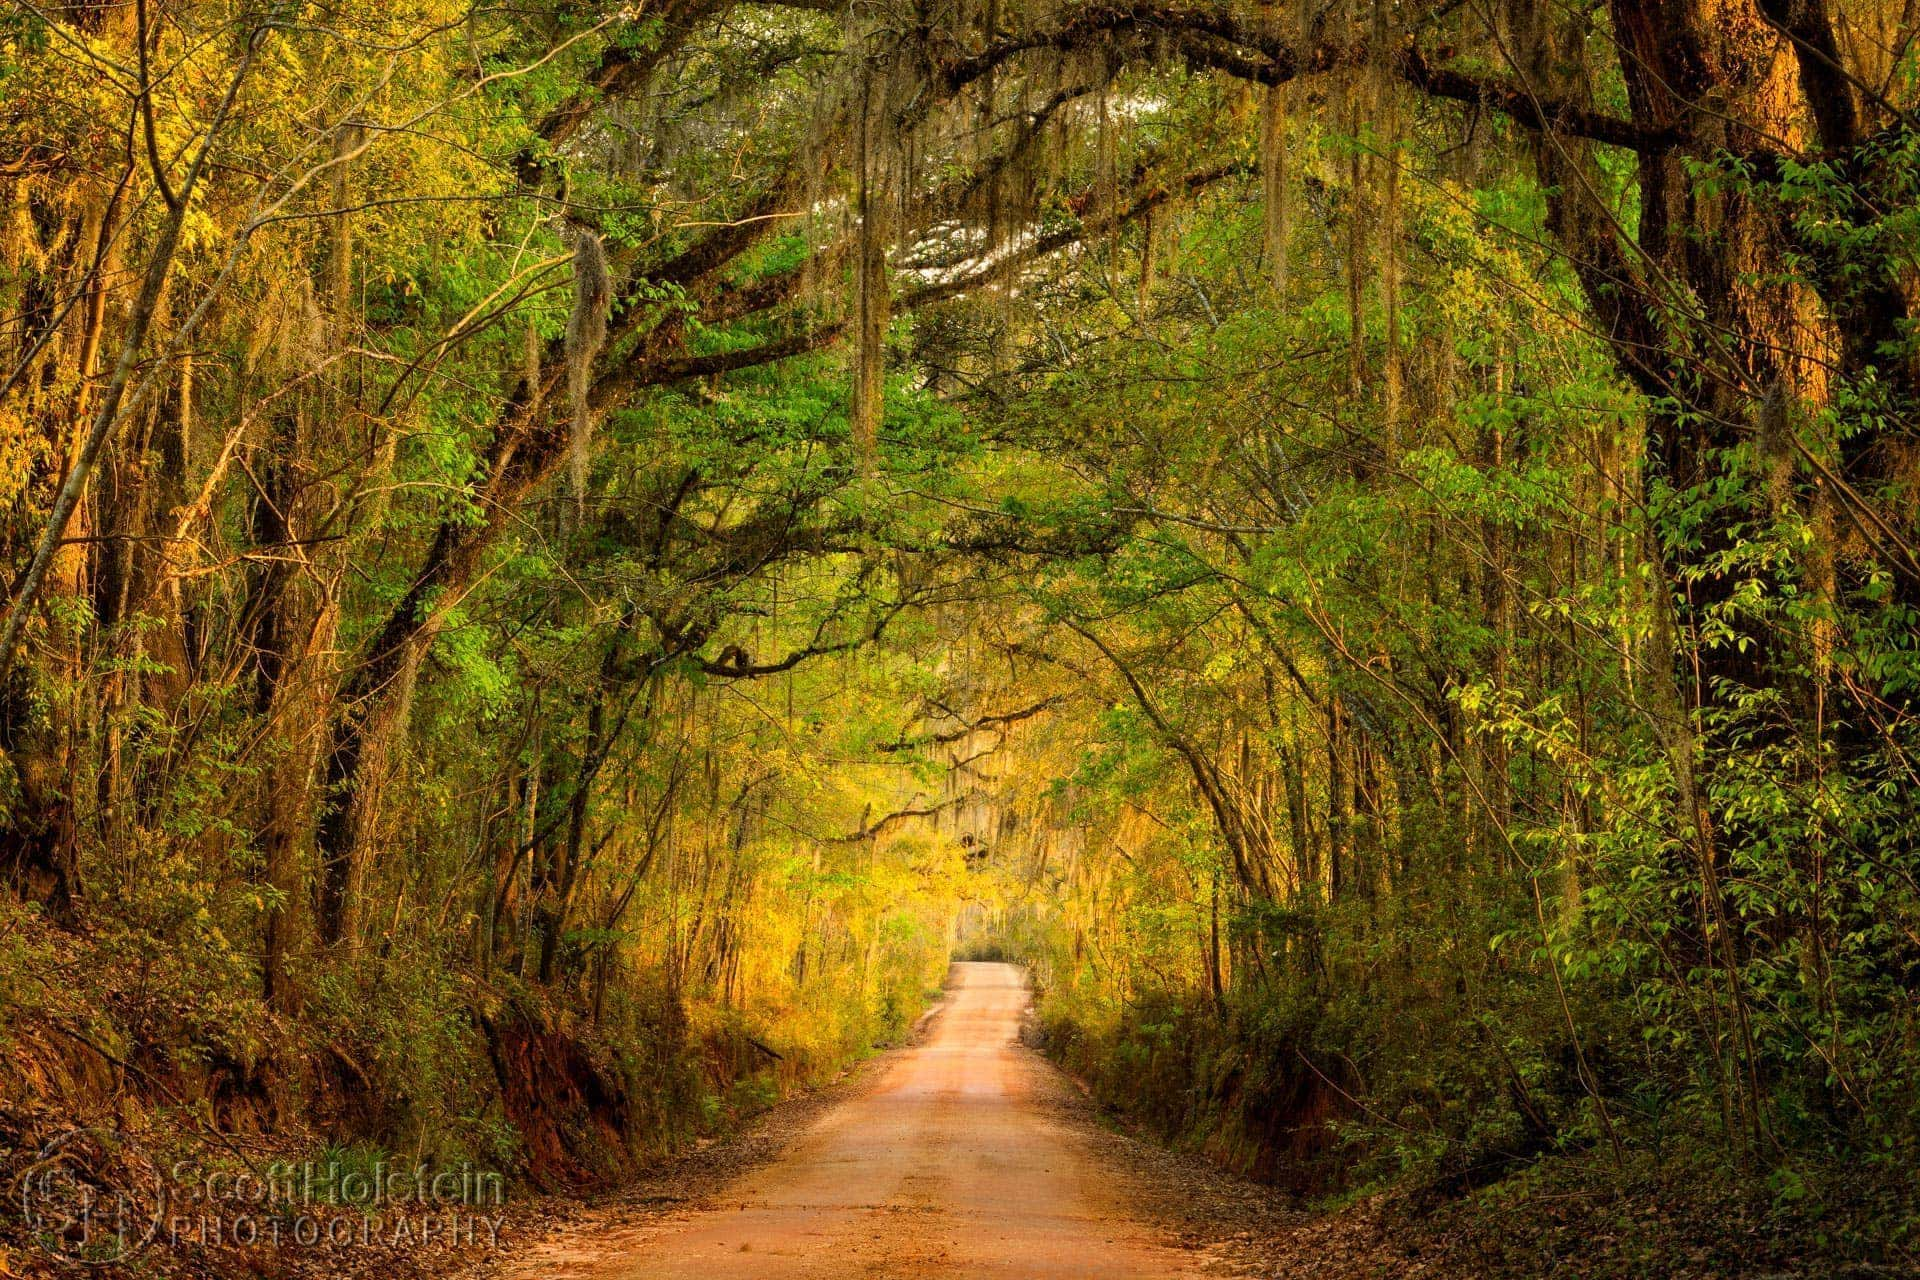 A view down Old Magnolia Road, one of the canopy roads in Tallahassee, at sunset in the early springtime.